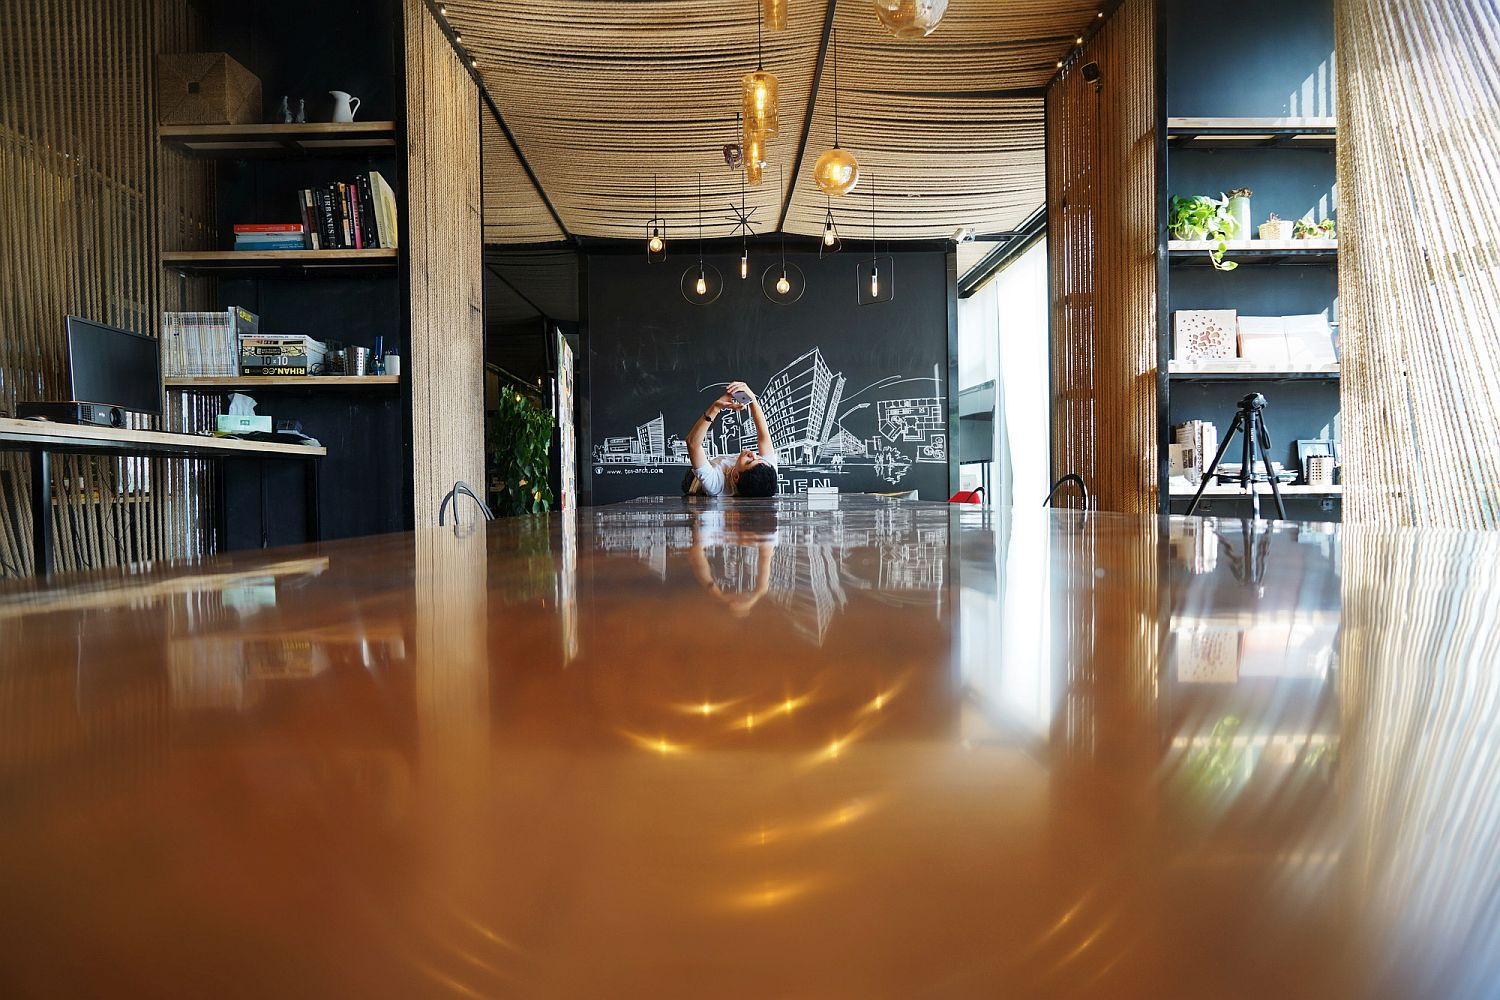 Wood, metal and rope fashion an innovative office with shared work spaces